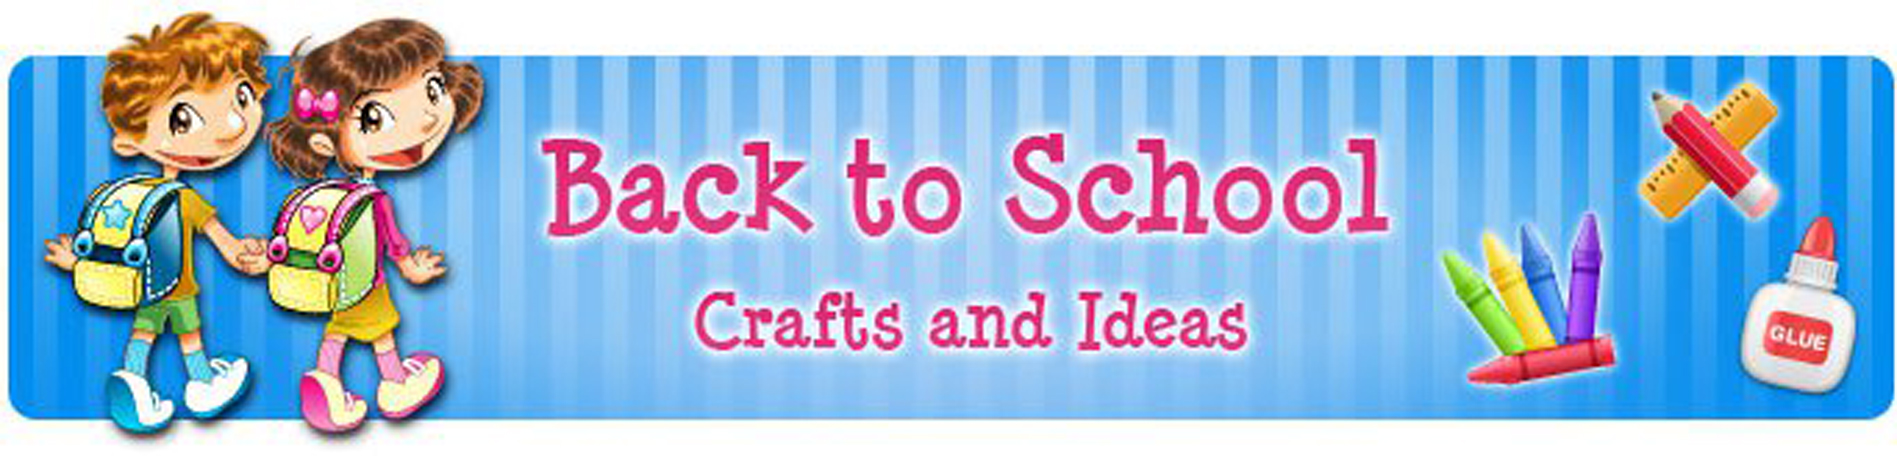 back to school banner big